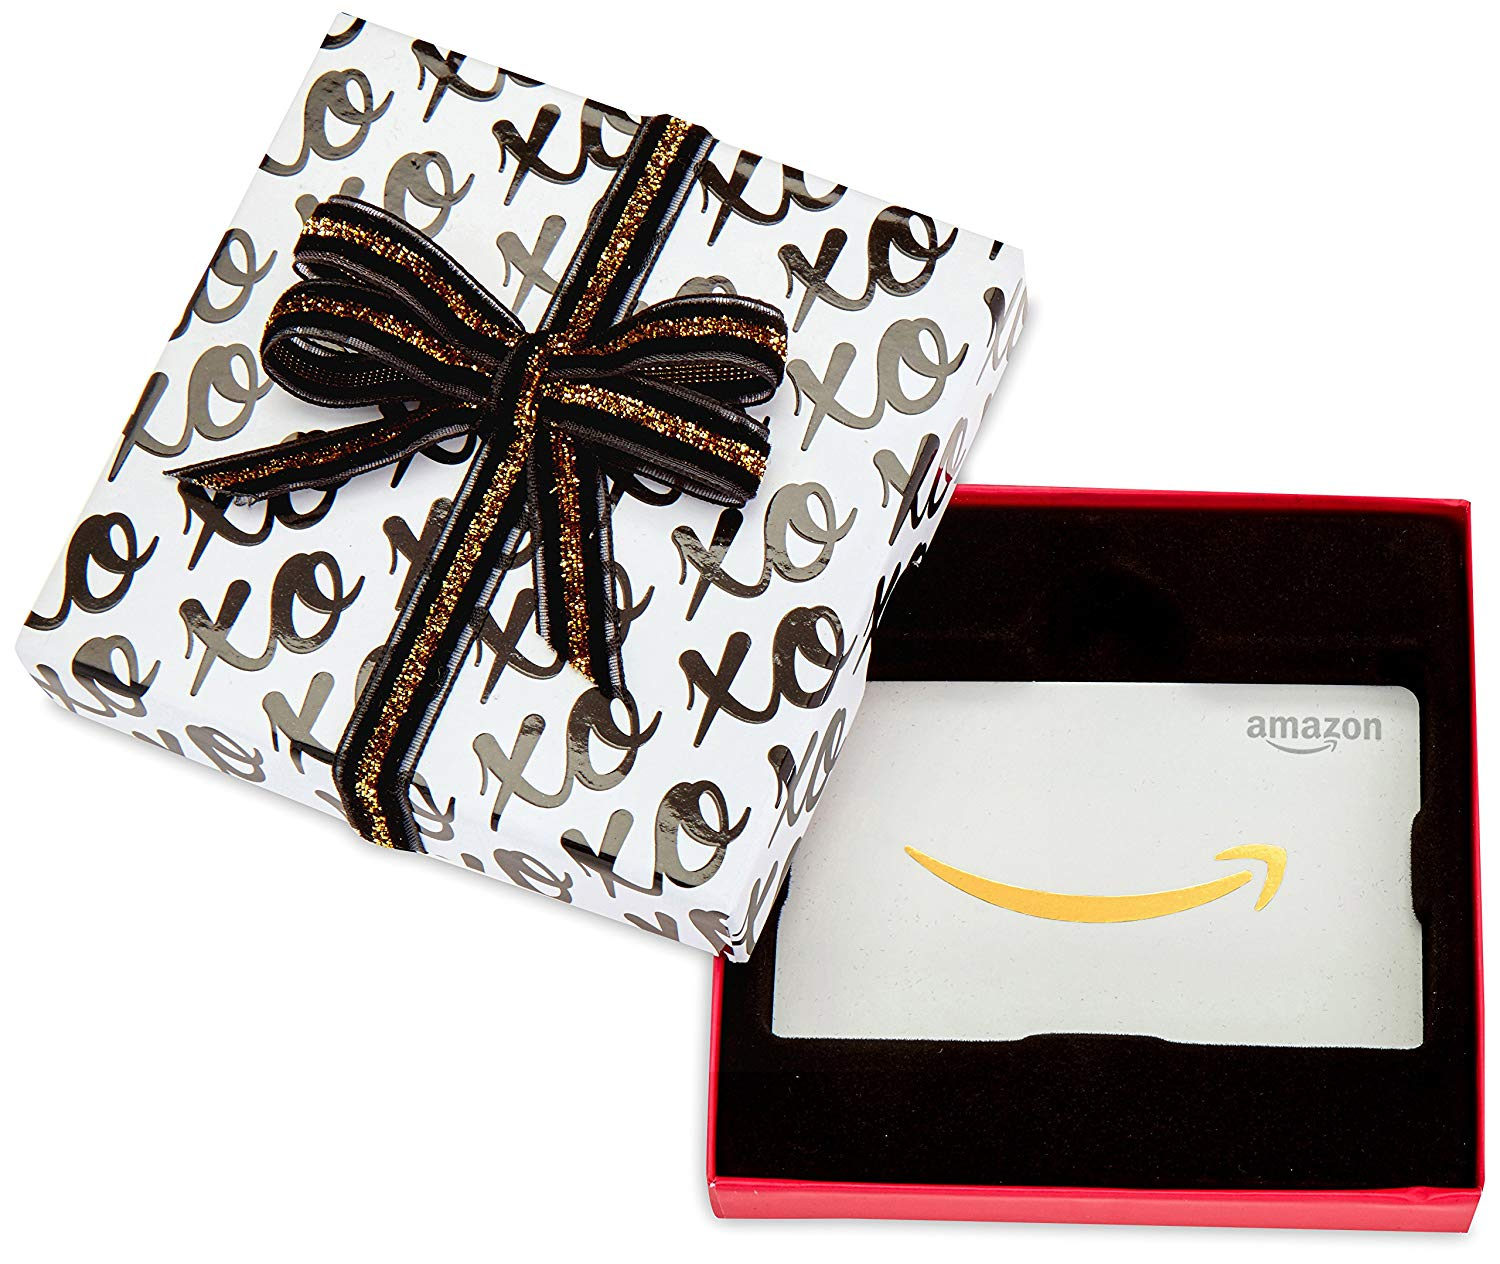 Amazon Gift Card Giveaway Rules & Regulations